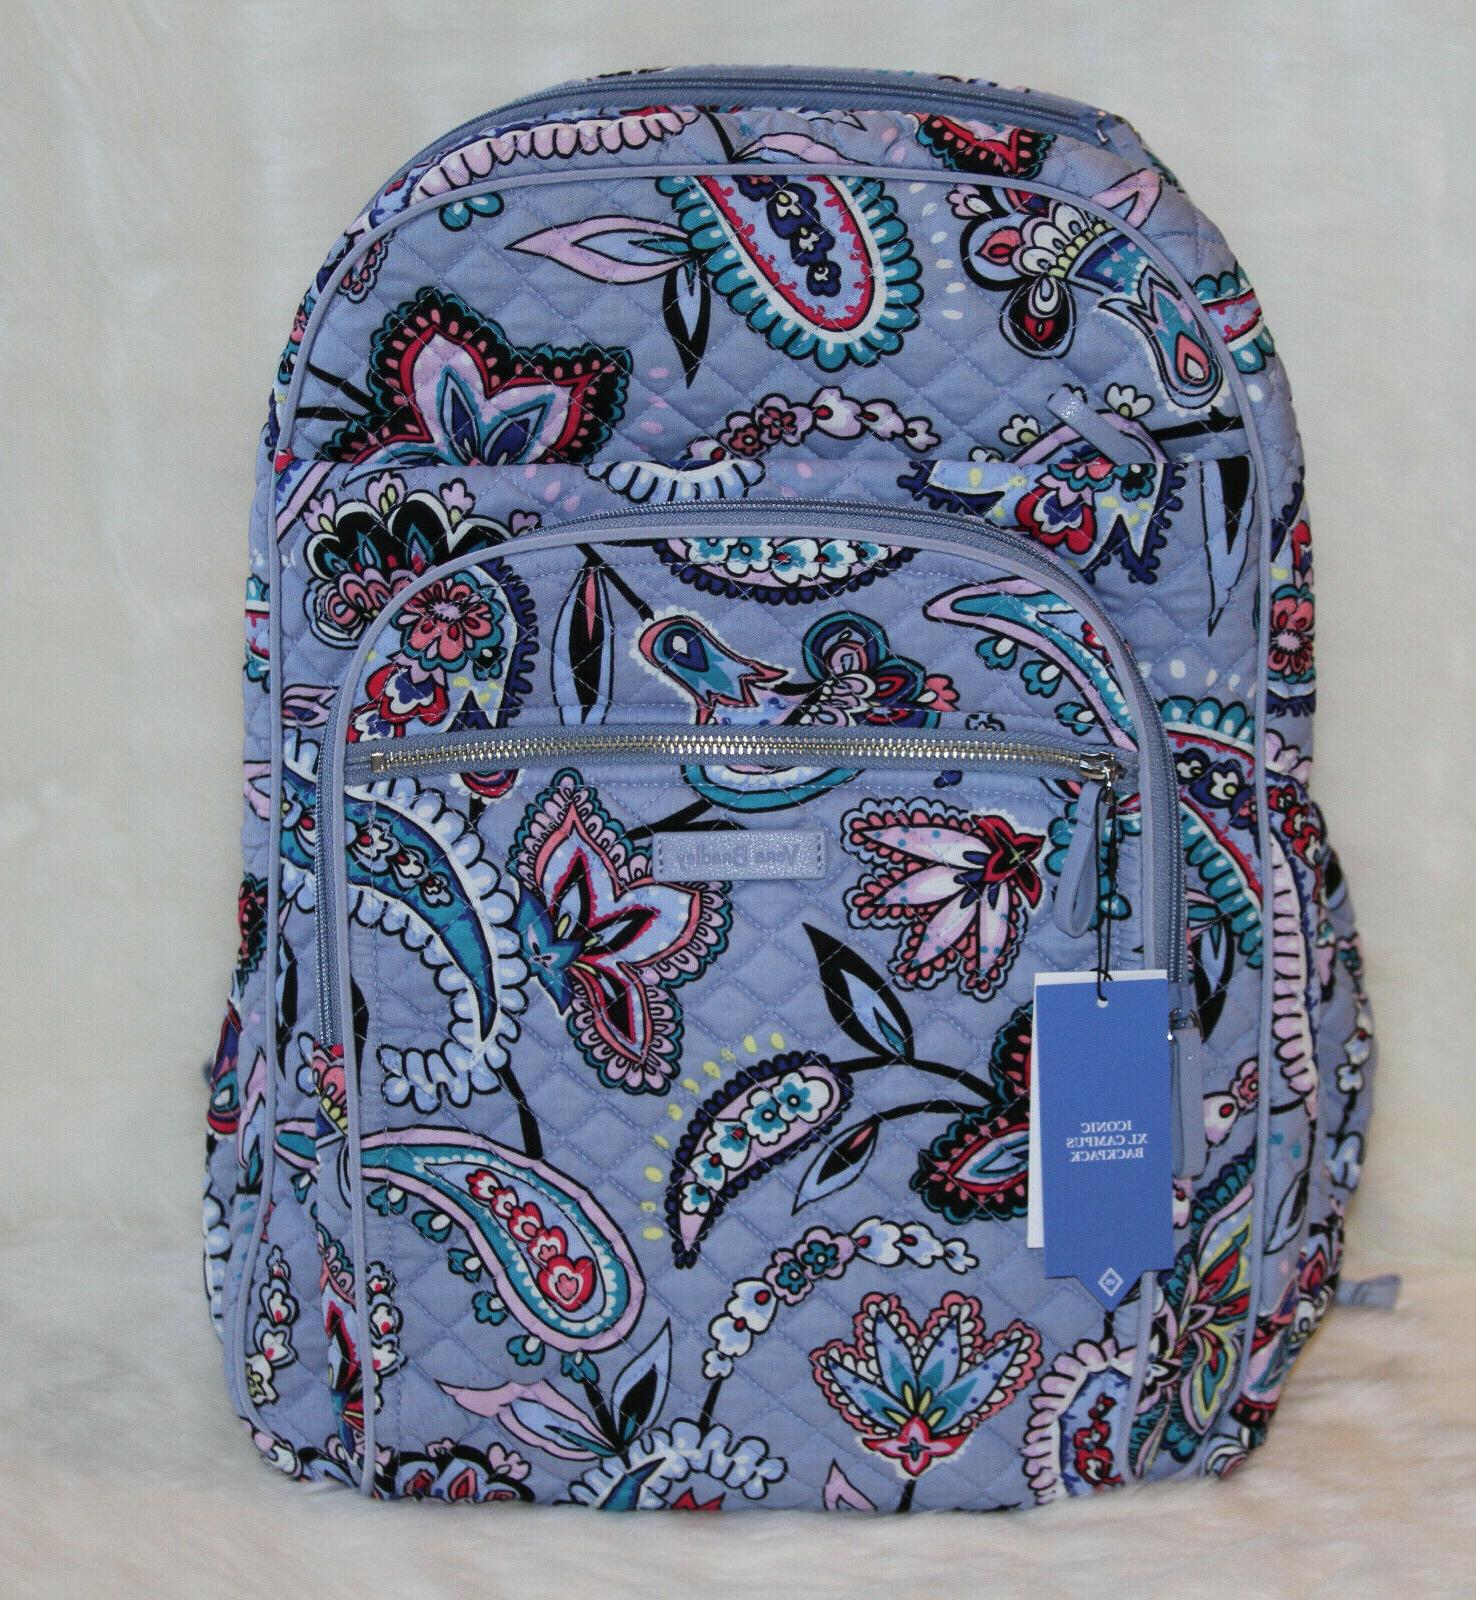 xl college campus backpack school laptop travel